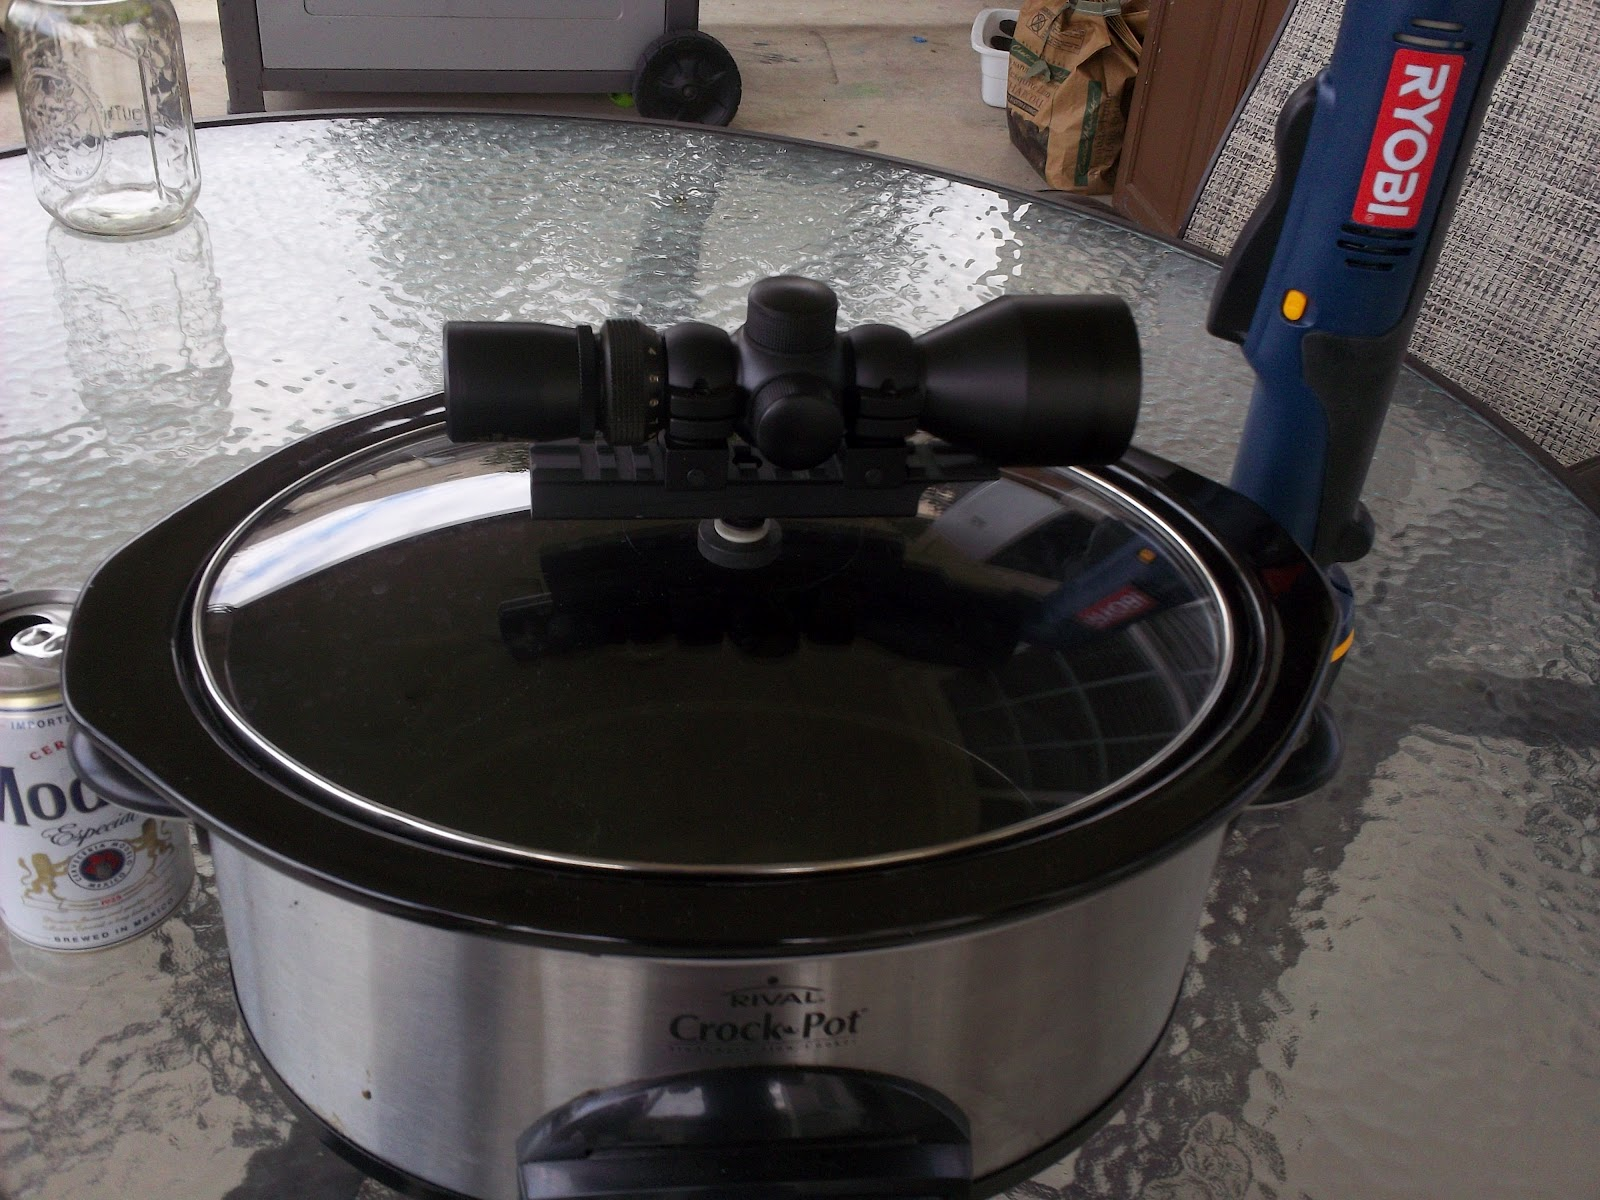 rock in a sea of chaos tactical crock pot getting ready for a chili cook off. Black Bedroom Furniture Sets. Home Design Ideas